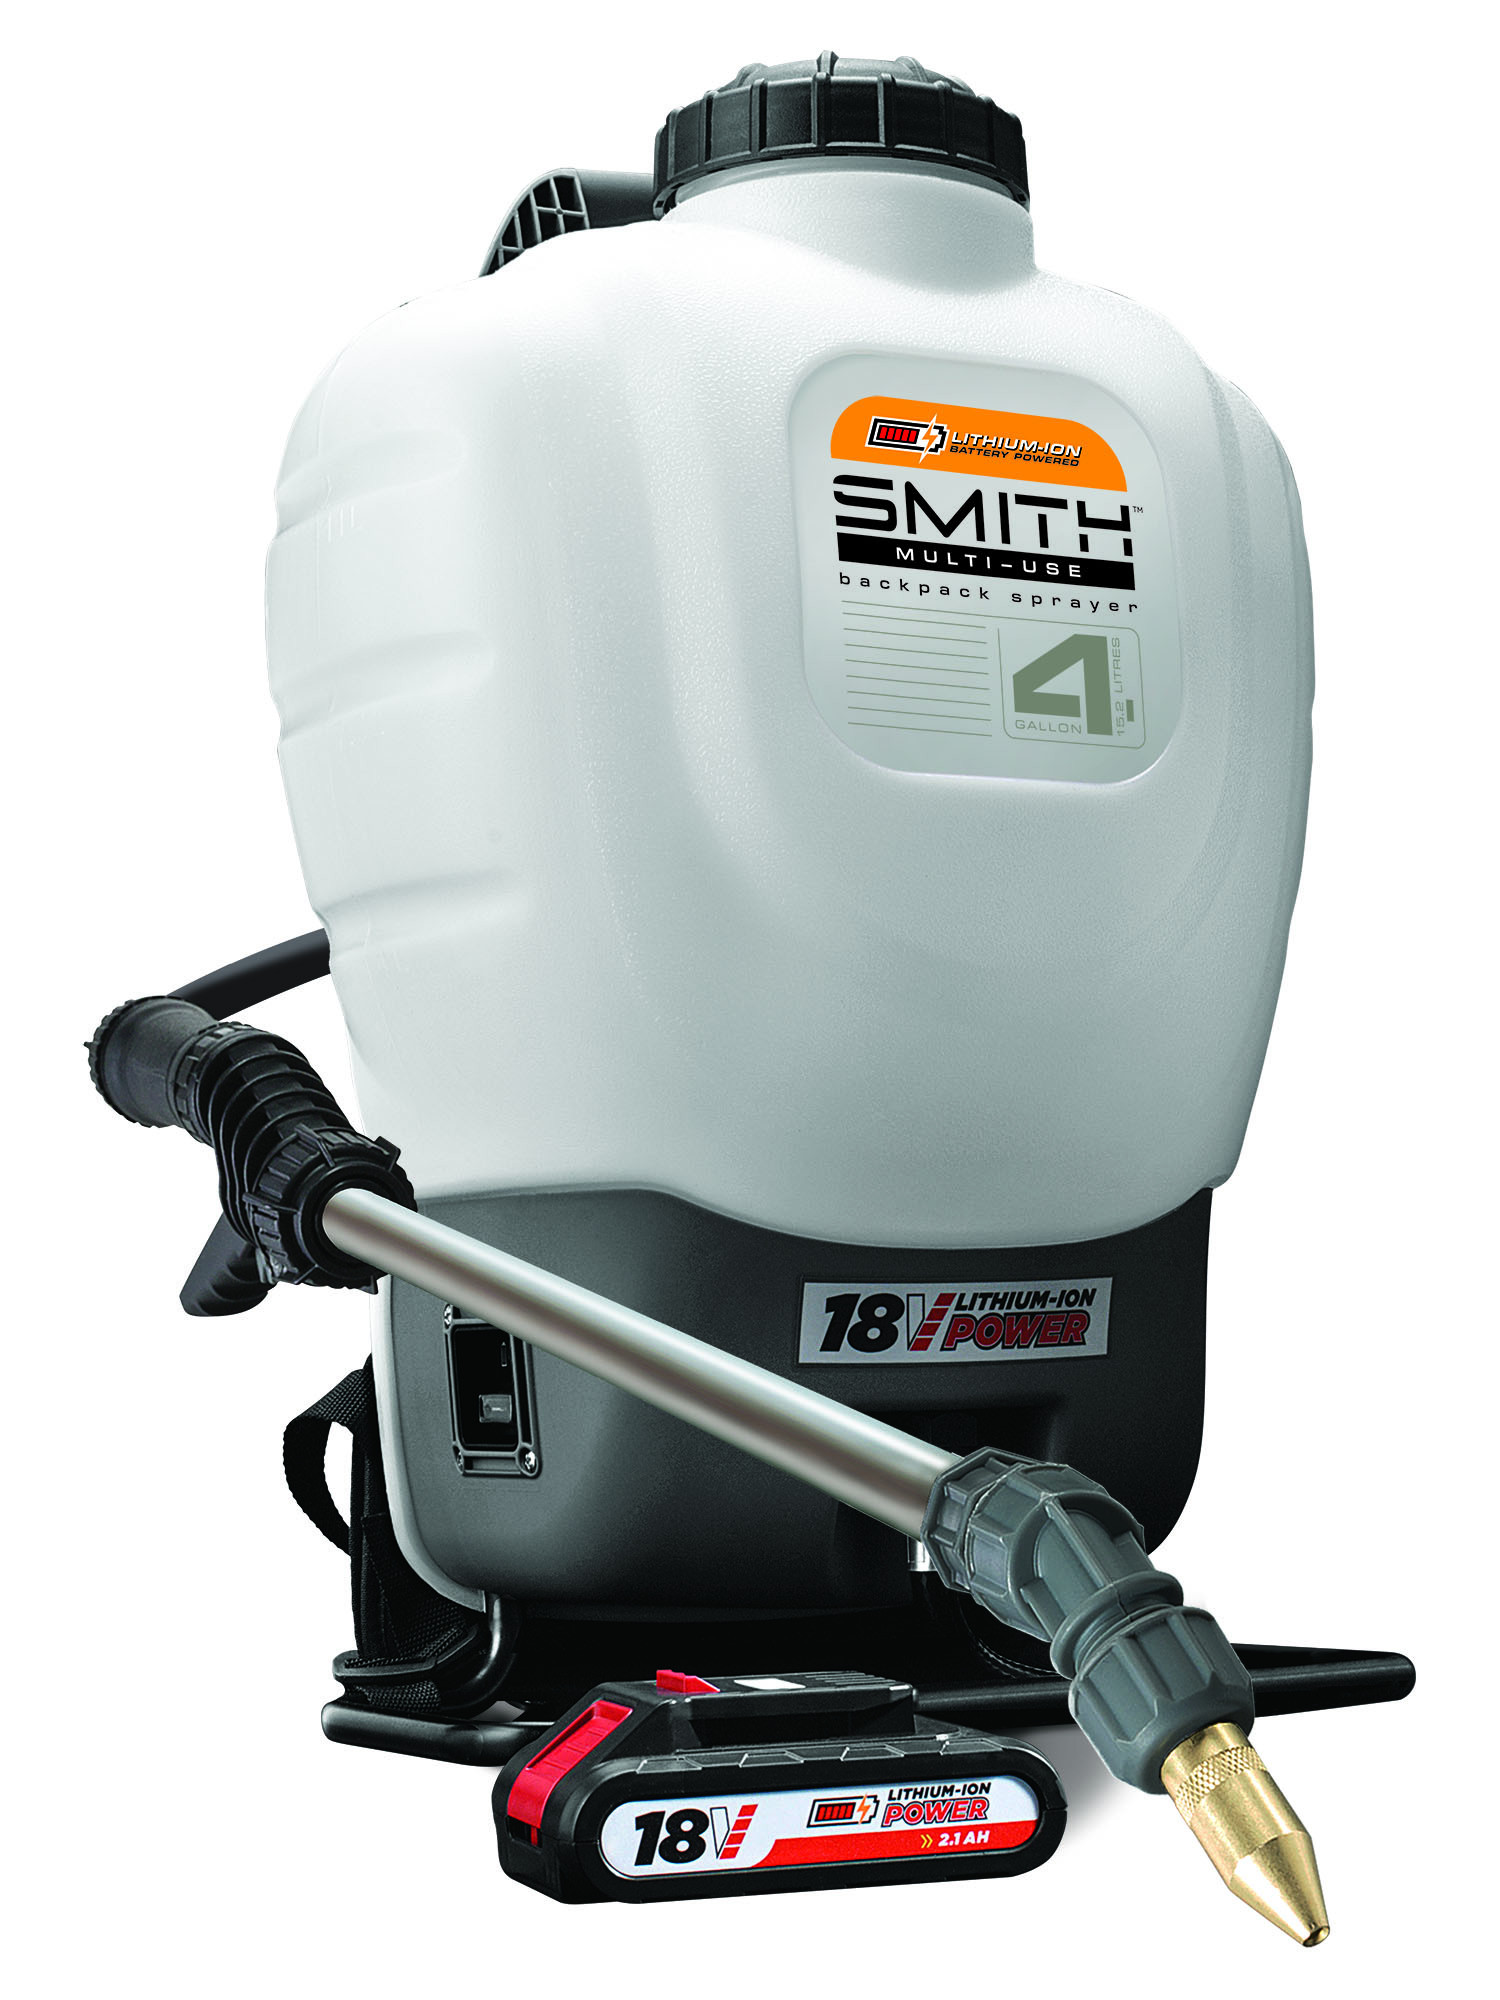 Smith Multi-Use 18V Lithium-ion Powered Backpack Sprayer, Model 190576